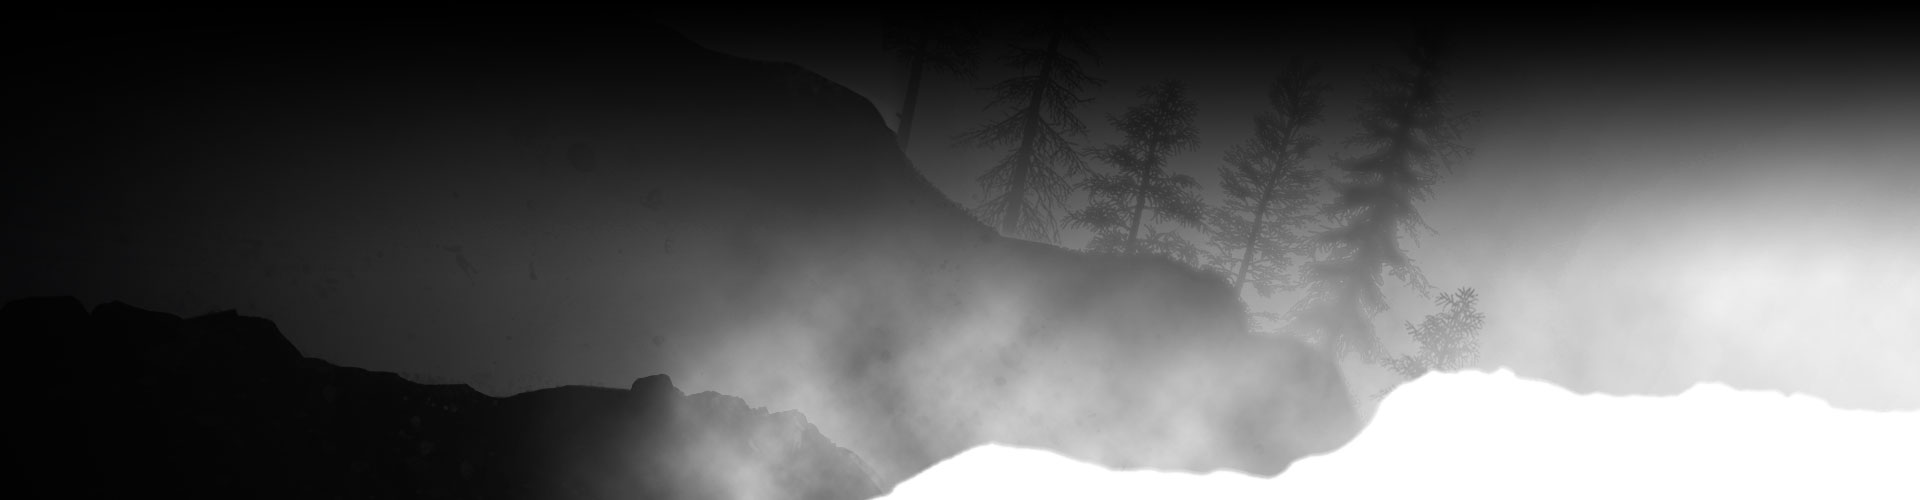 Silhouette of trees and rocks covered in fog